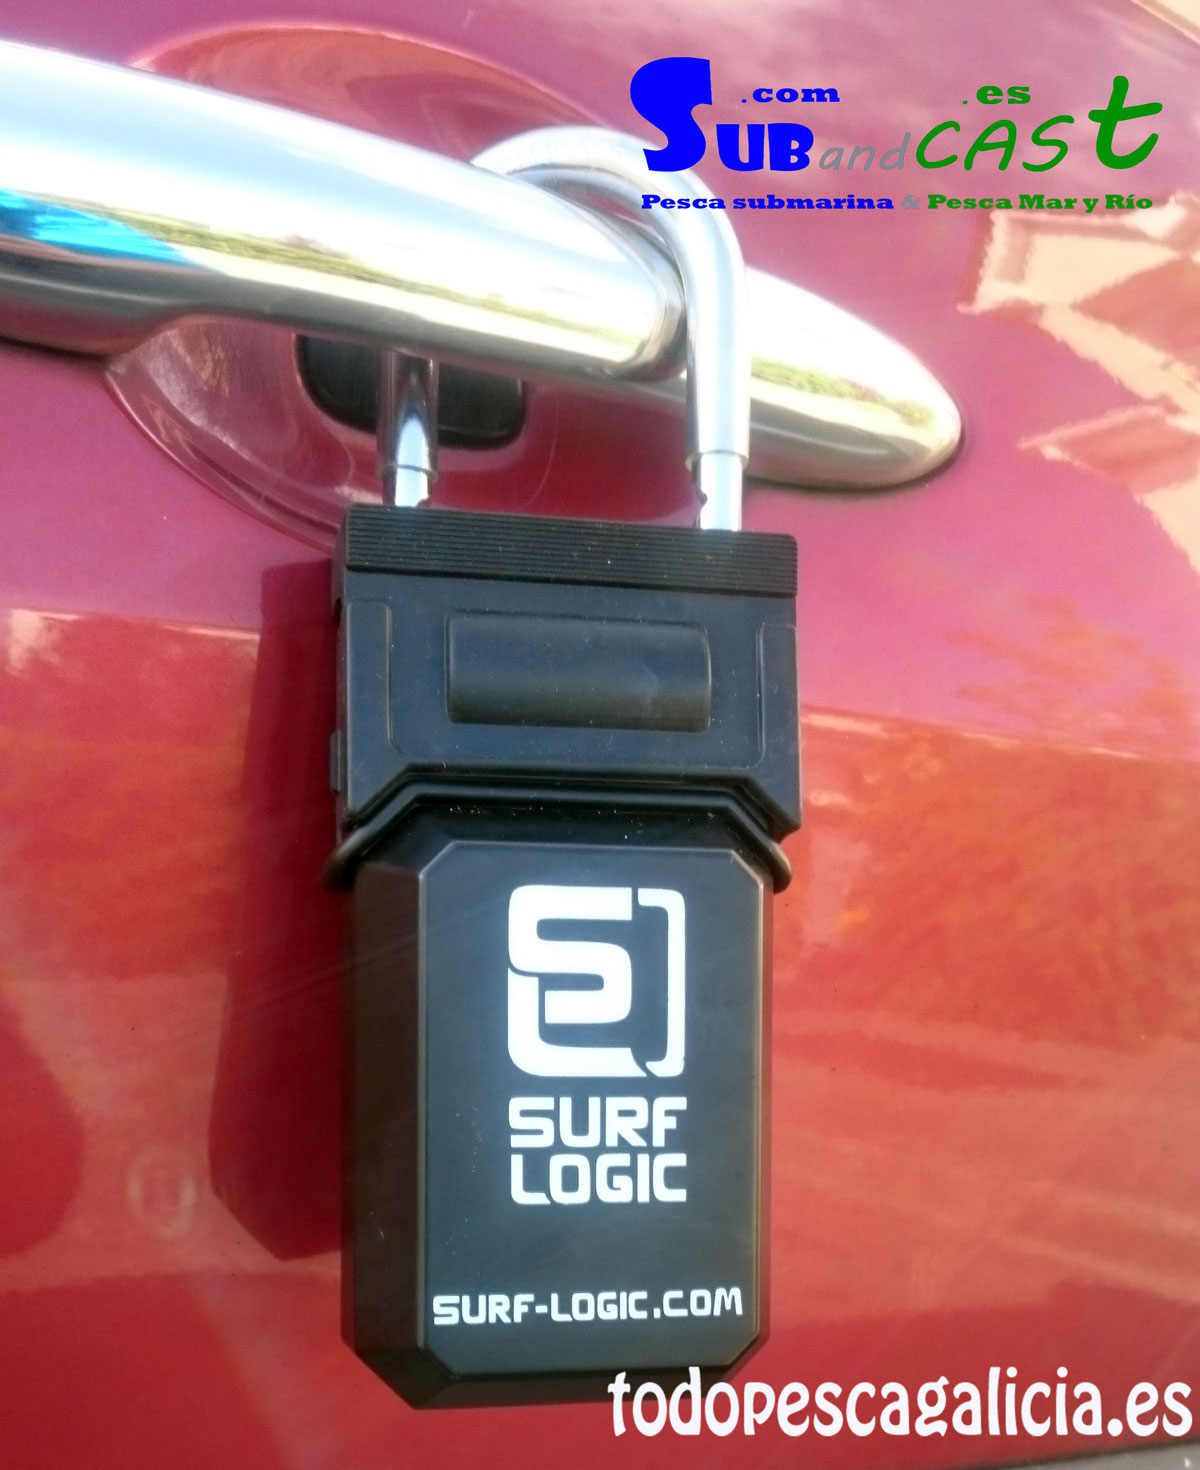 surf-logic-cerrada